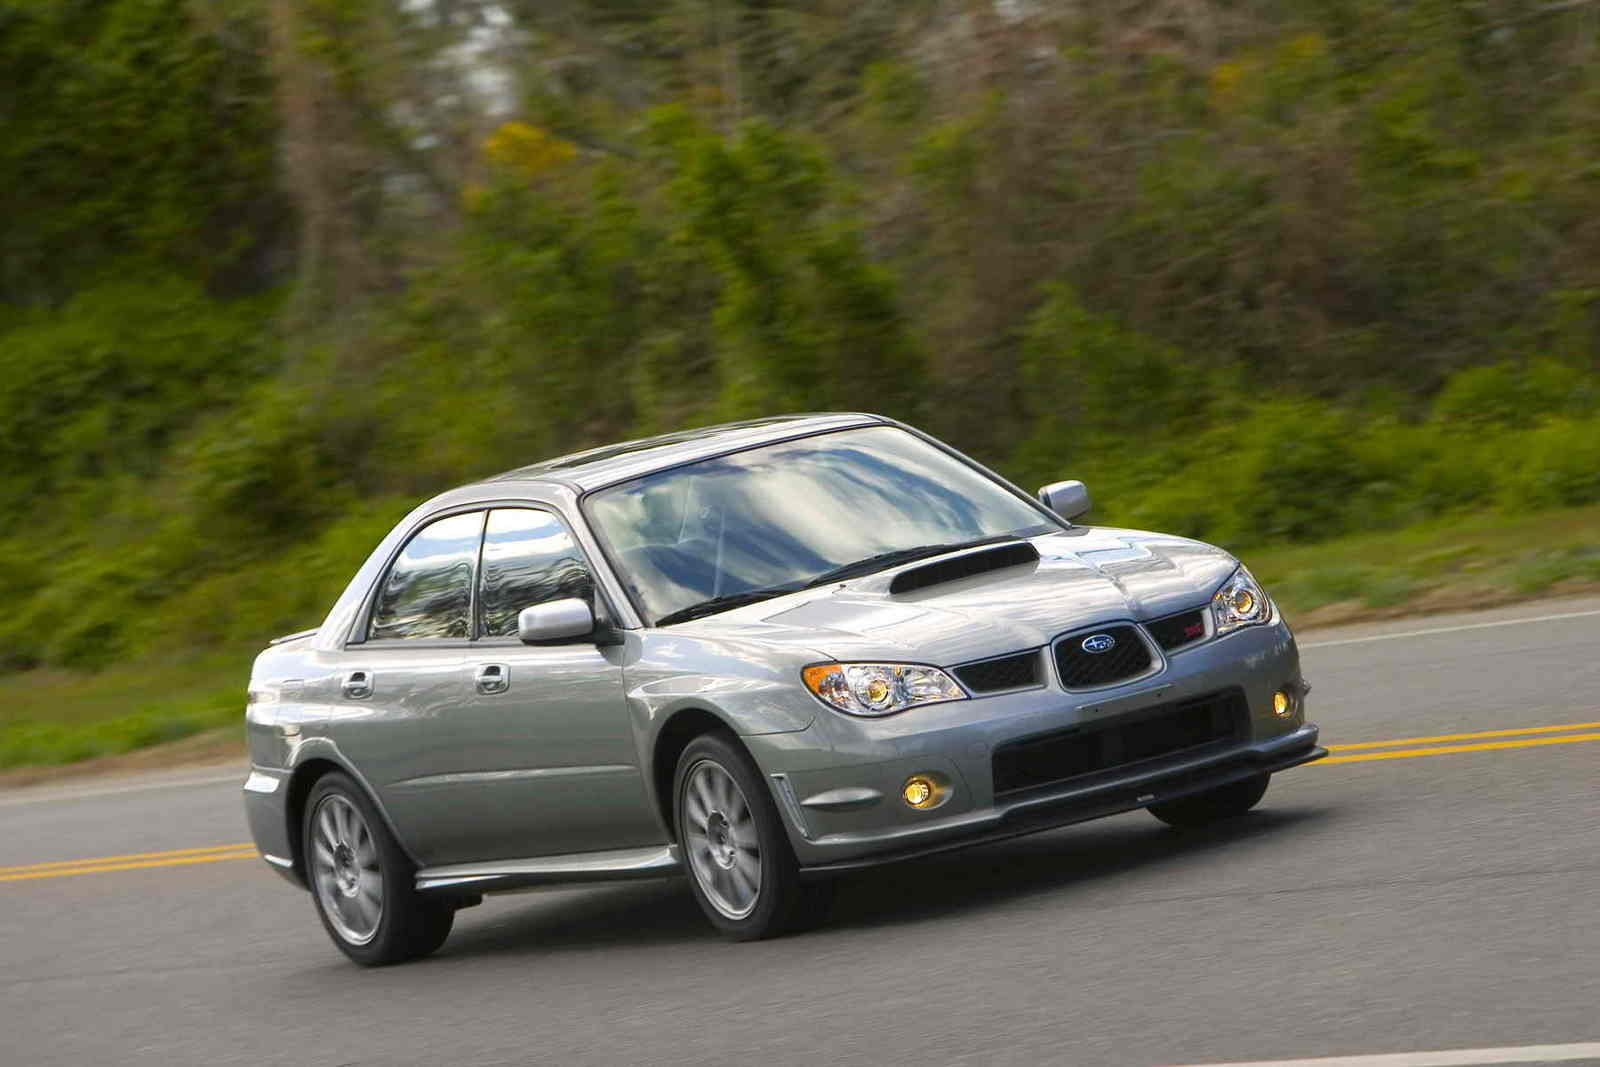 2007 subaru impreza wrx sti limited picture 53084 car review top speed. Black Bedroom Furniture Sets. Home Design Ideas